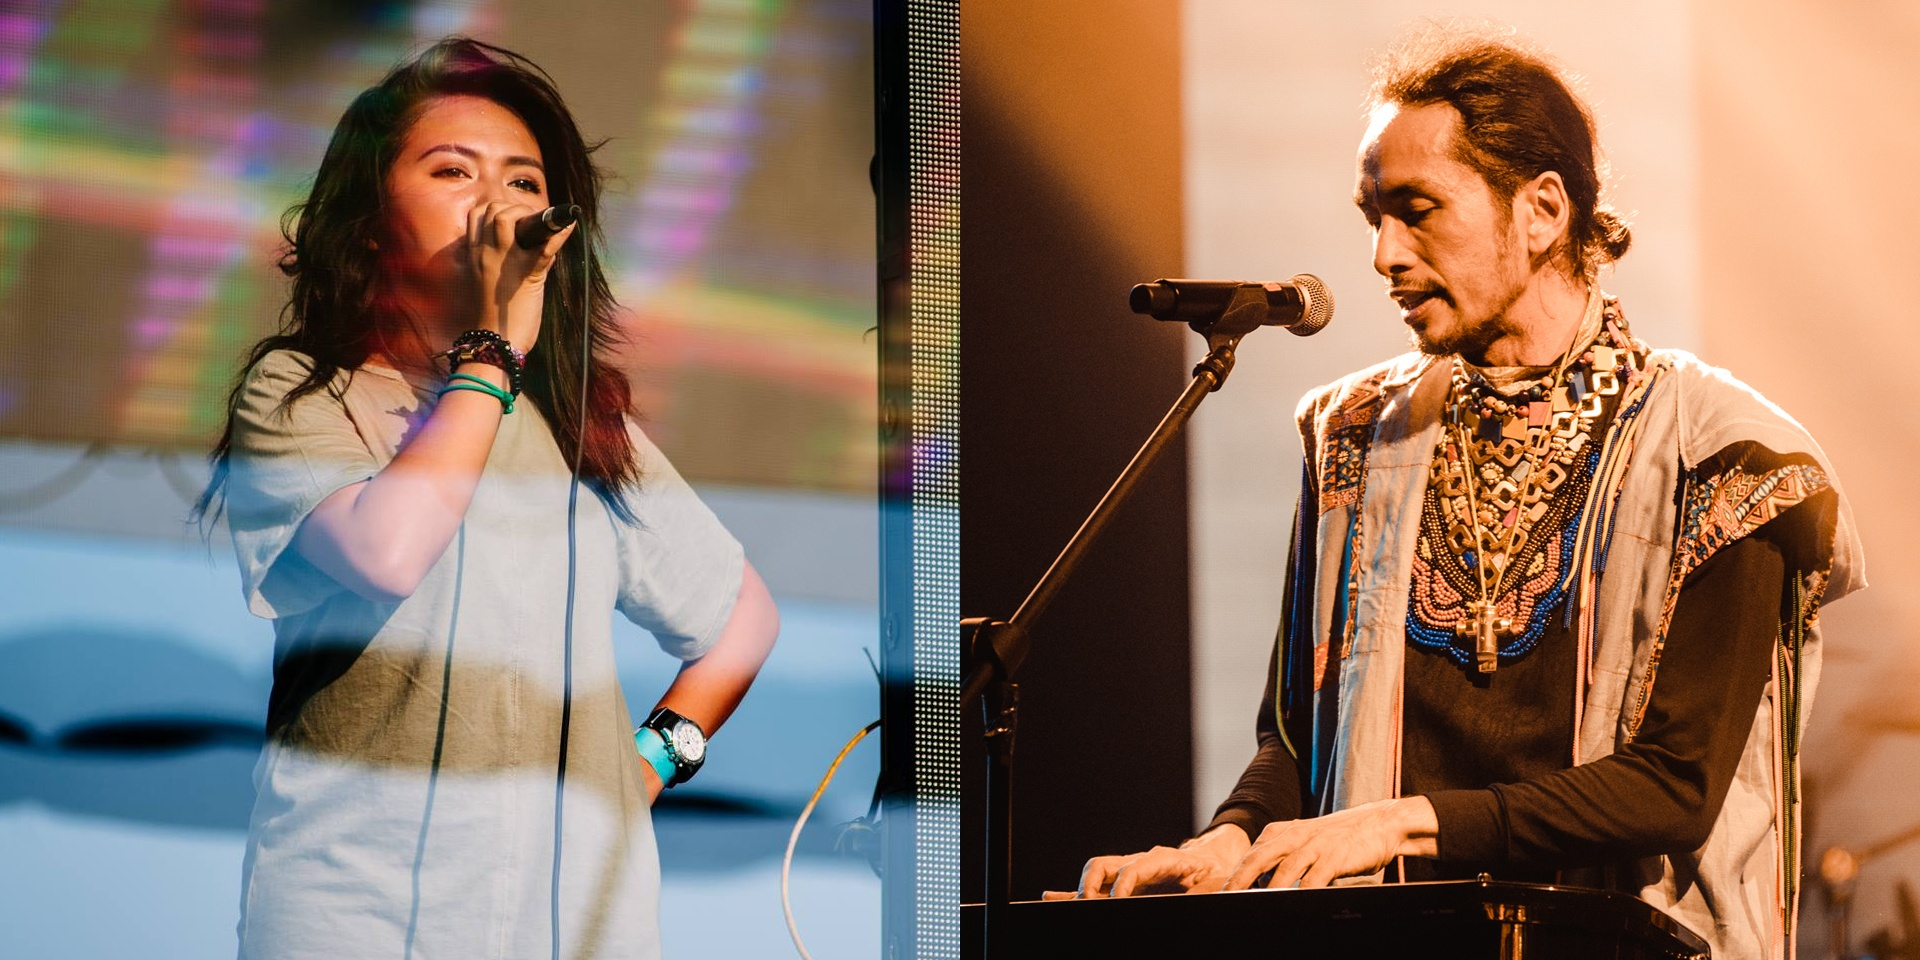 Joyce Pring plays with reflection and light in Rico Blanco collab 'Baka Sakali' vertical video – watch